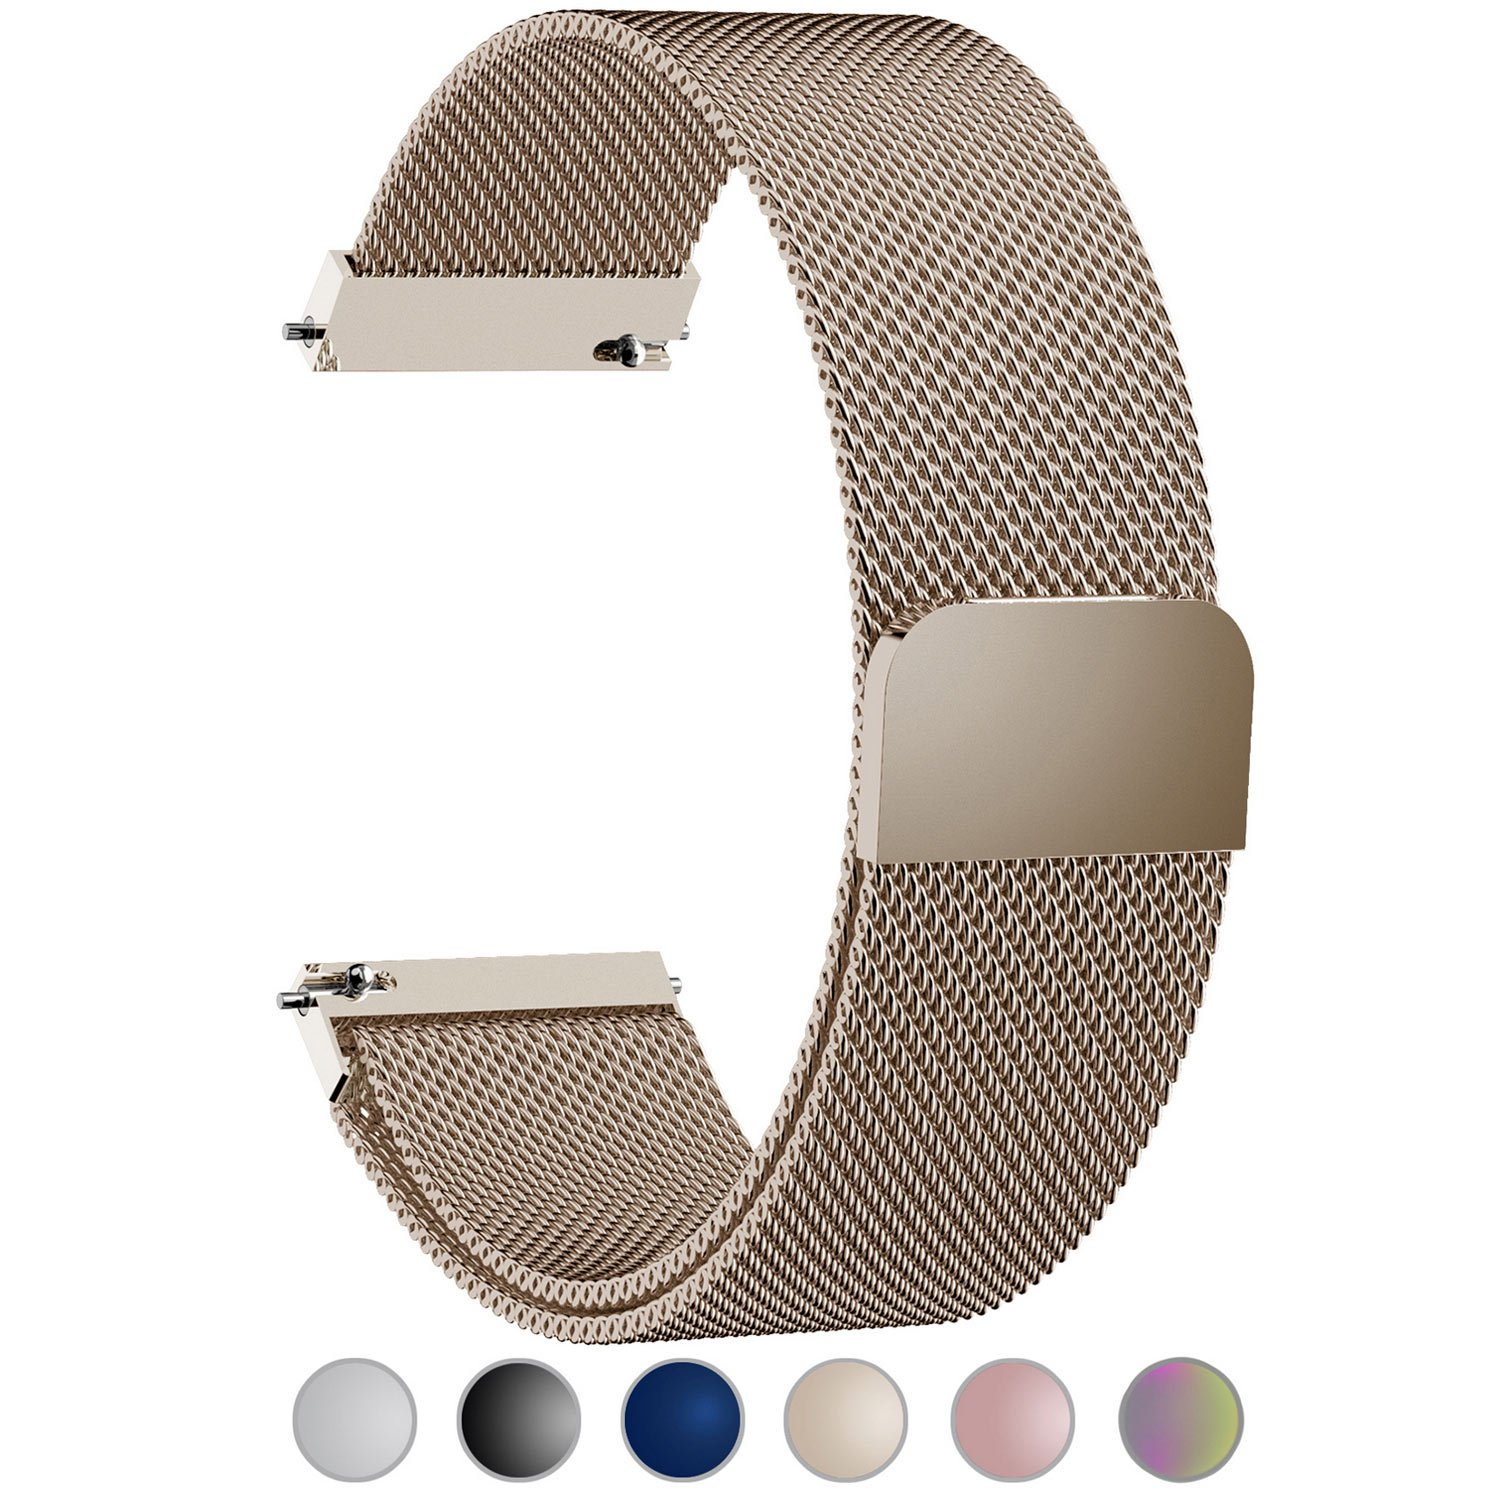 Fullmosa Compatible Huawei Watch Band, 18mm Watch Strap Quick Release Compatible Asus Zenwatch 2/LG Watch Style/Withings Activité/Steel HR 36mm Bracelet Milanese Watch Bands for Men Women, Gold